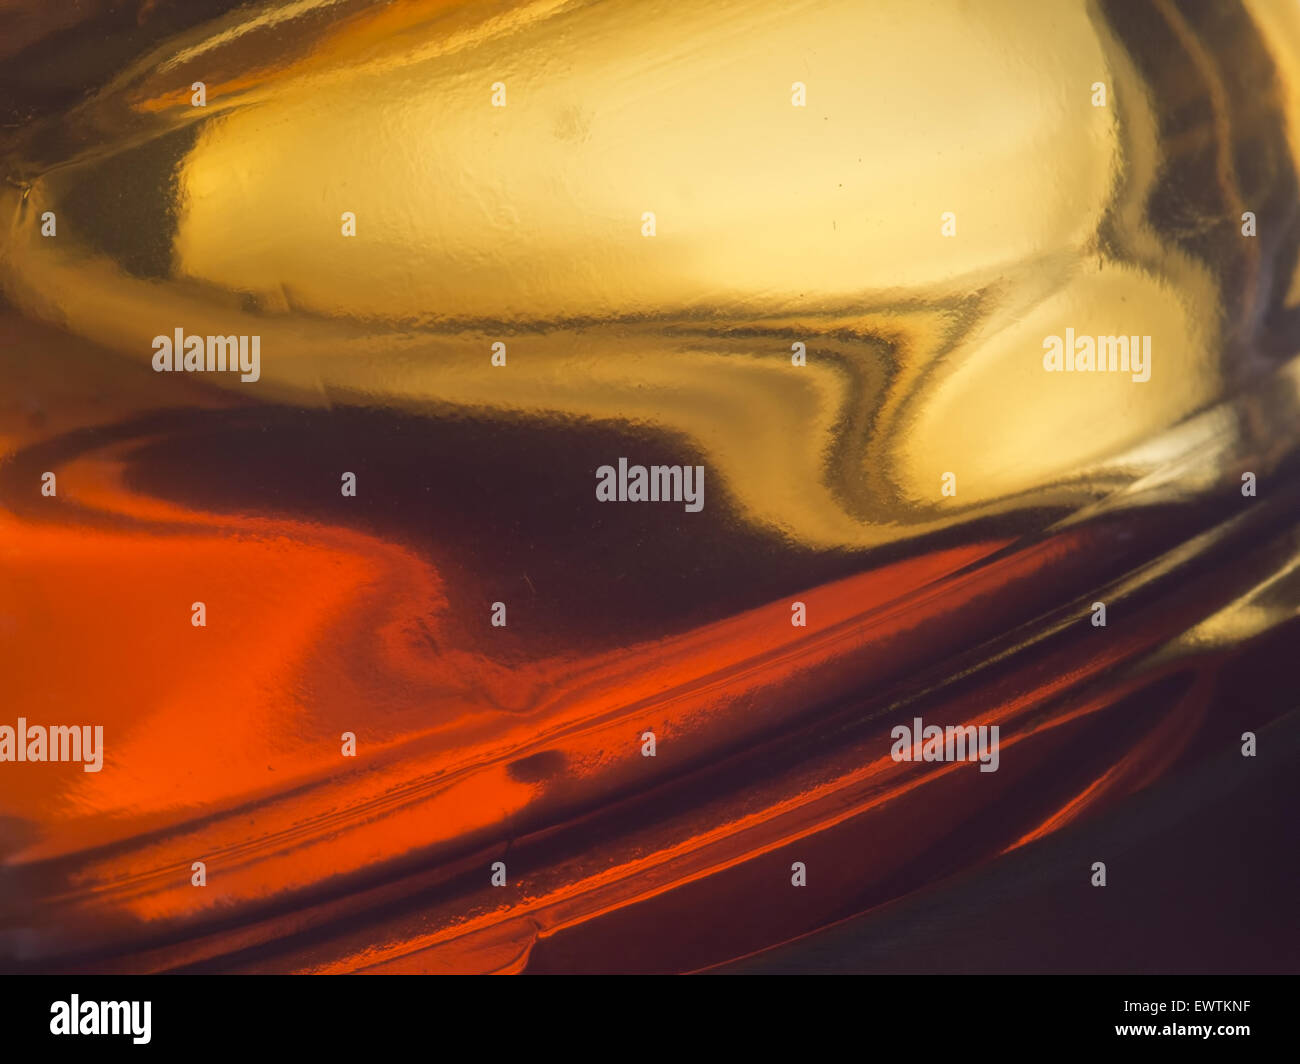 Runny honey detail. Farm produced honey in thick glass pot. - Stock Image